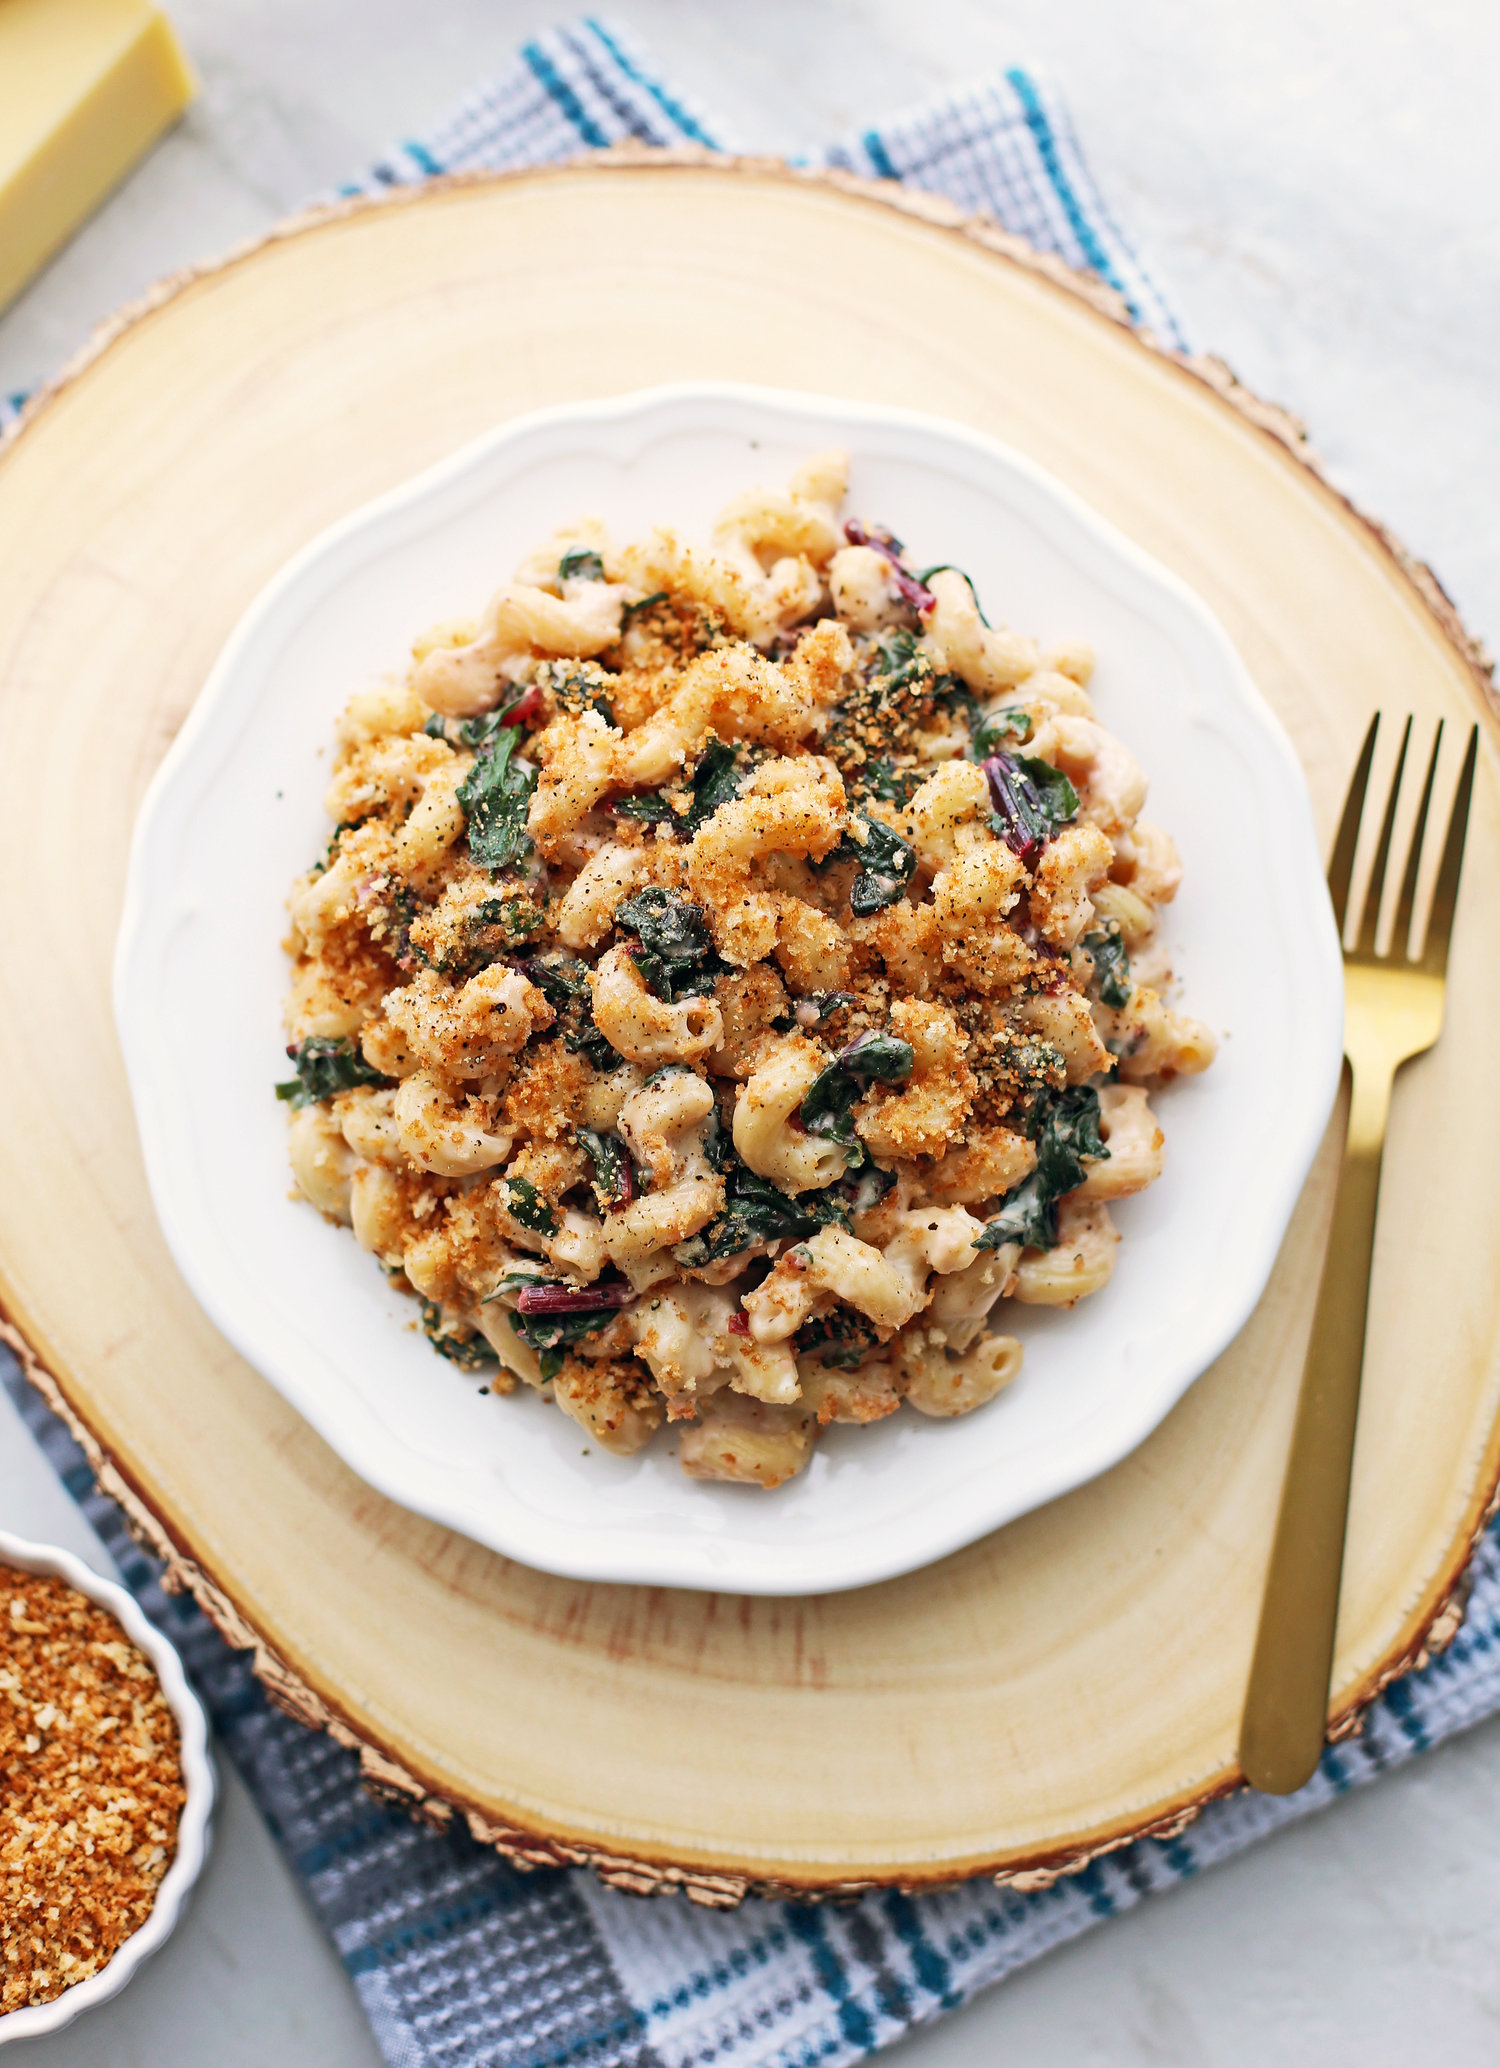 Creamy Gruyere and Swiss Chard Pasta with Toasted Panko Breadcrumbs